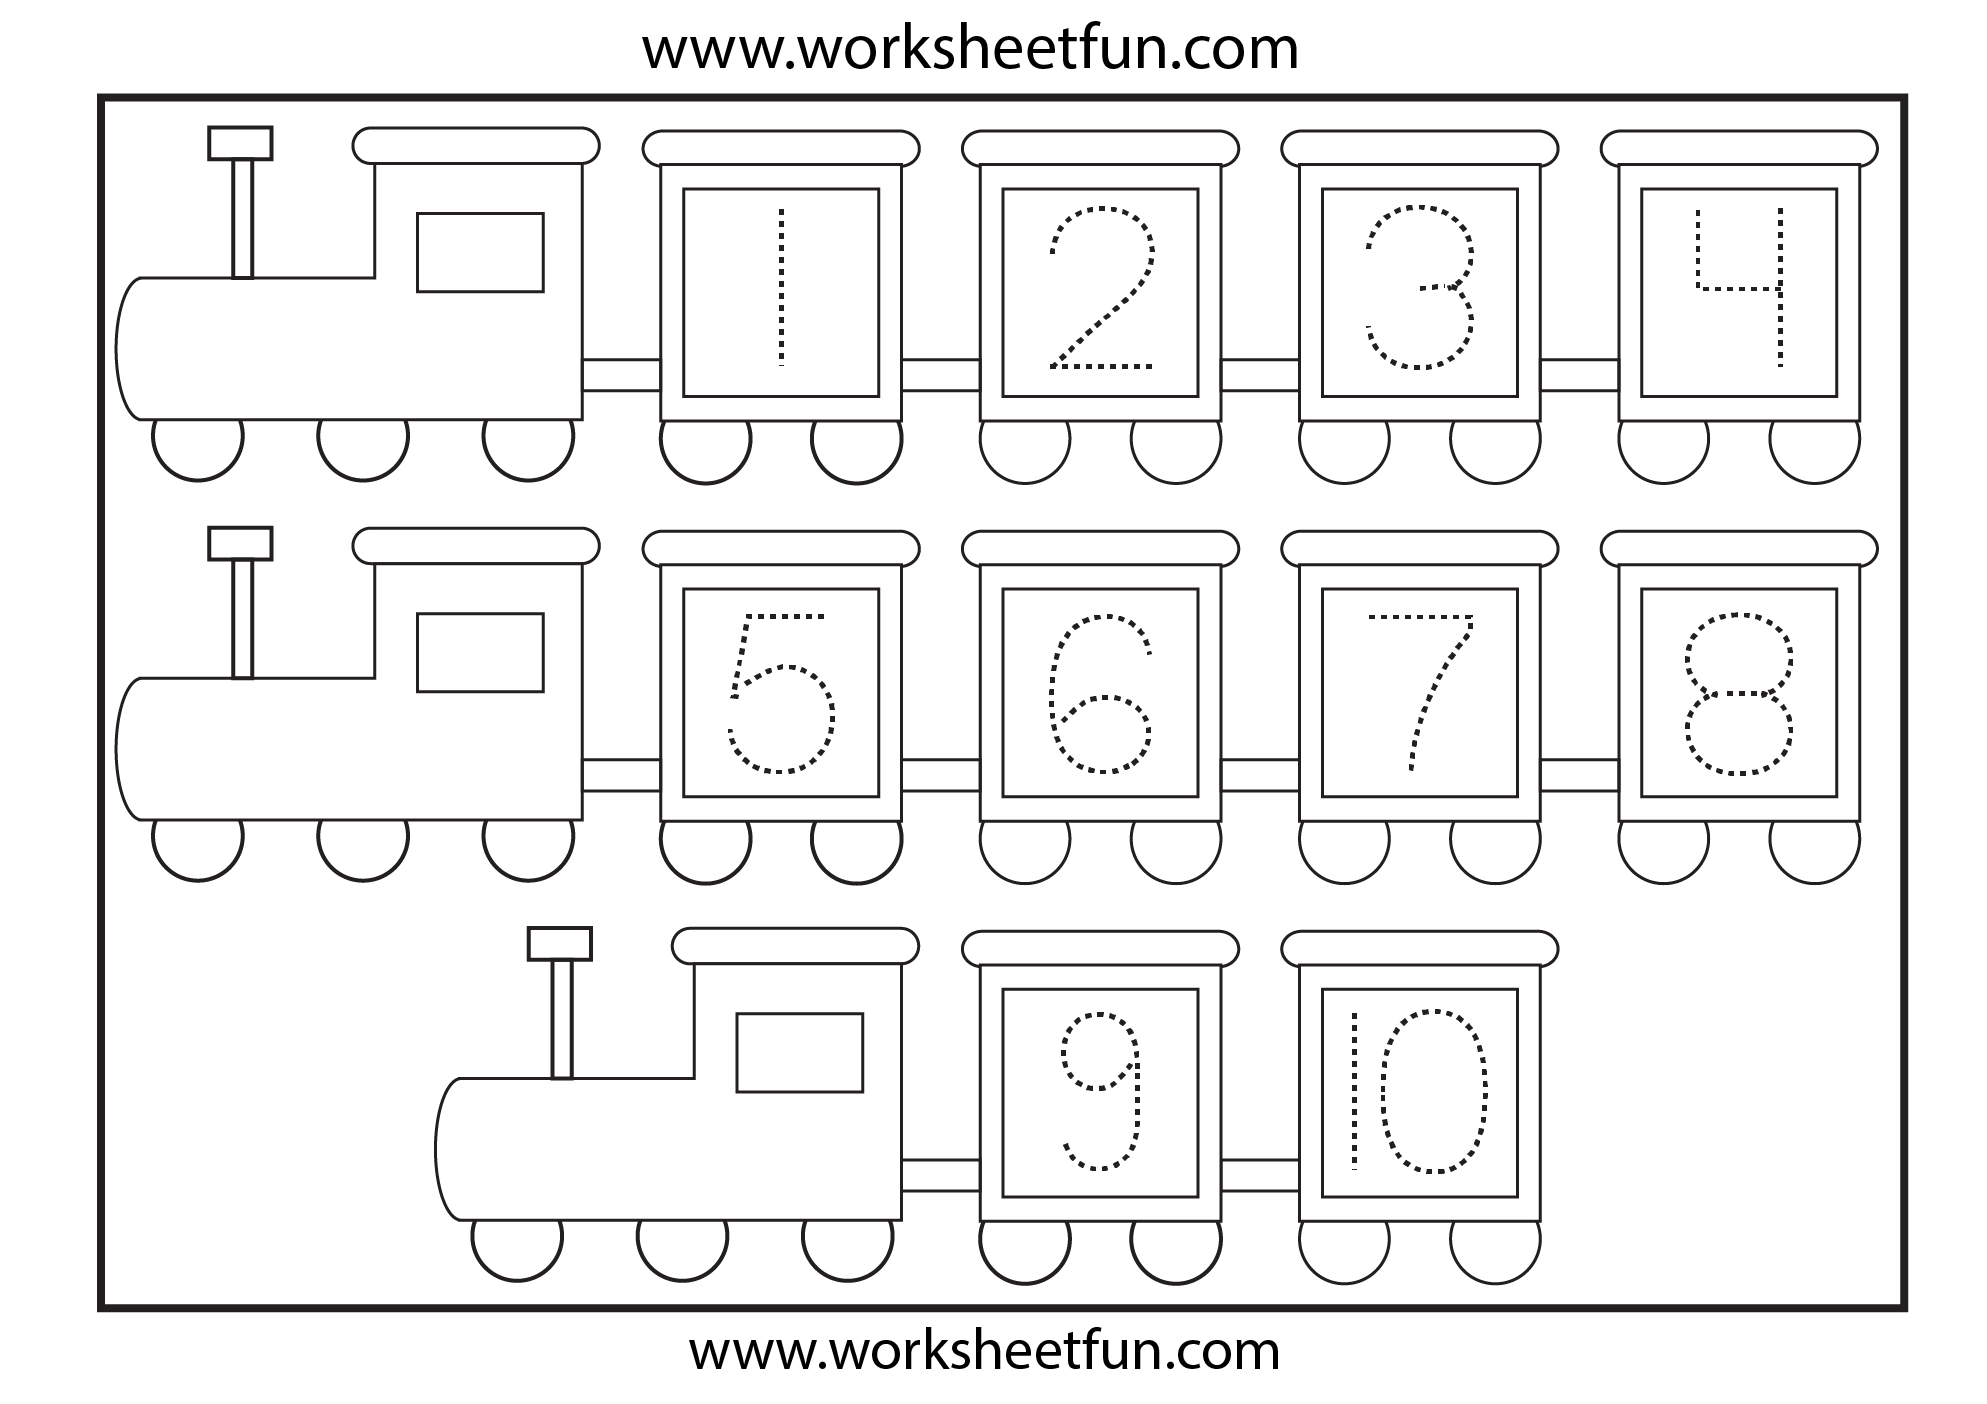 worksheet Number 10 Worksheets 17 images about number worksheets on pinterest to work year 2 and letter tracing